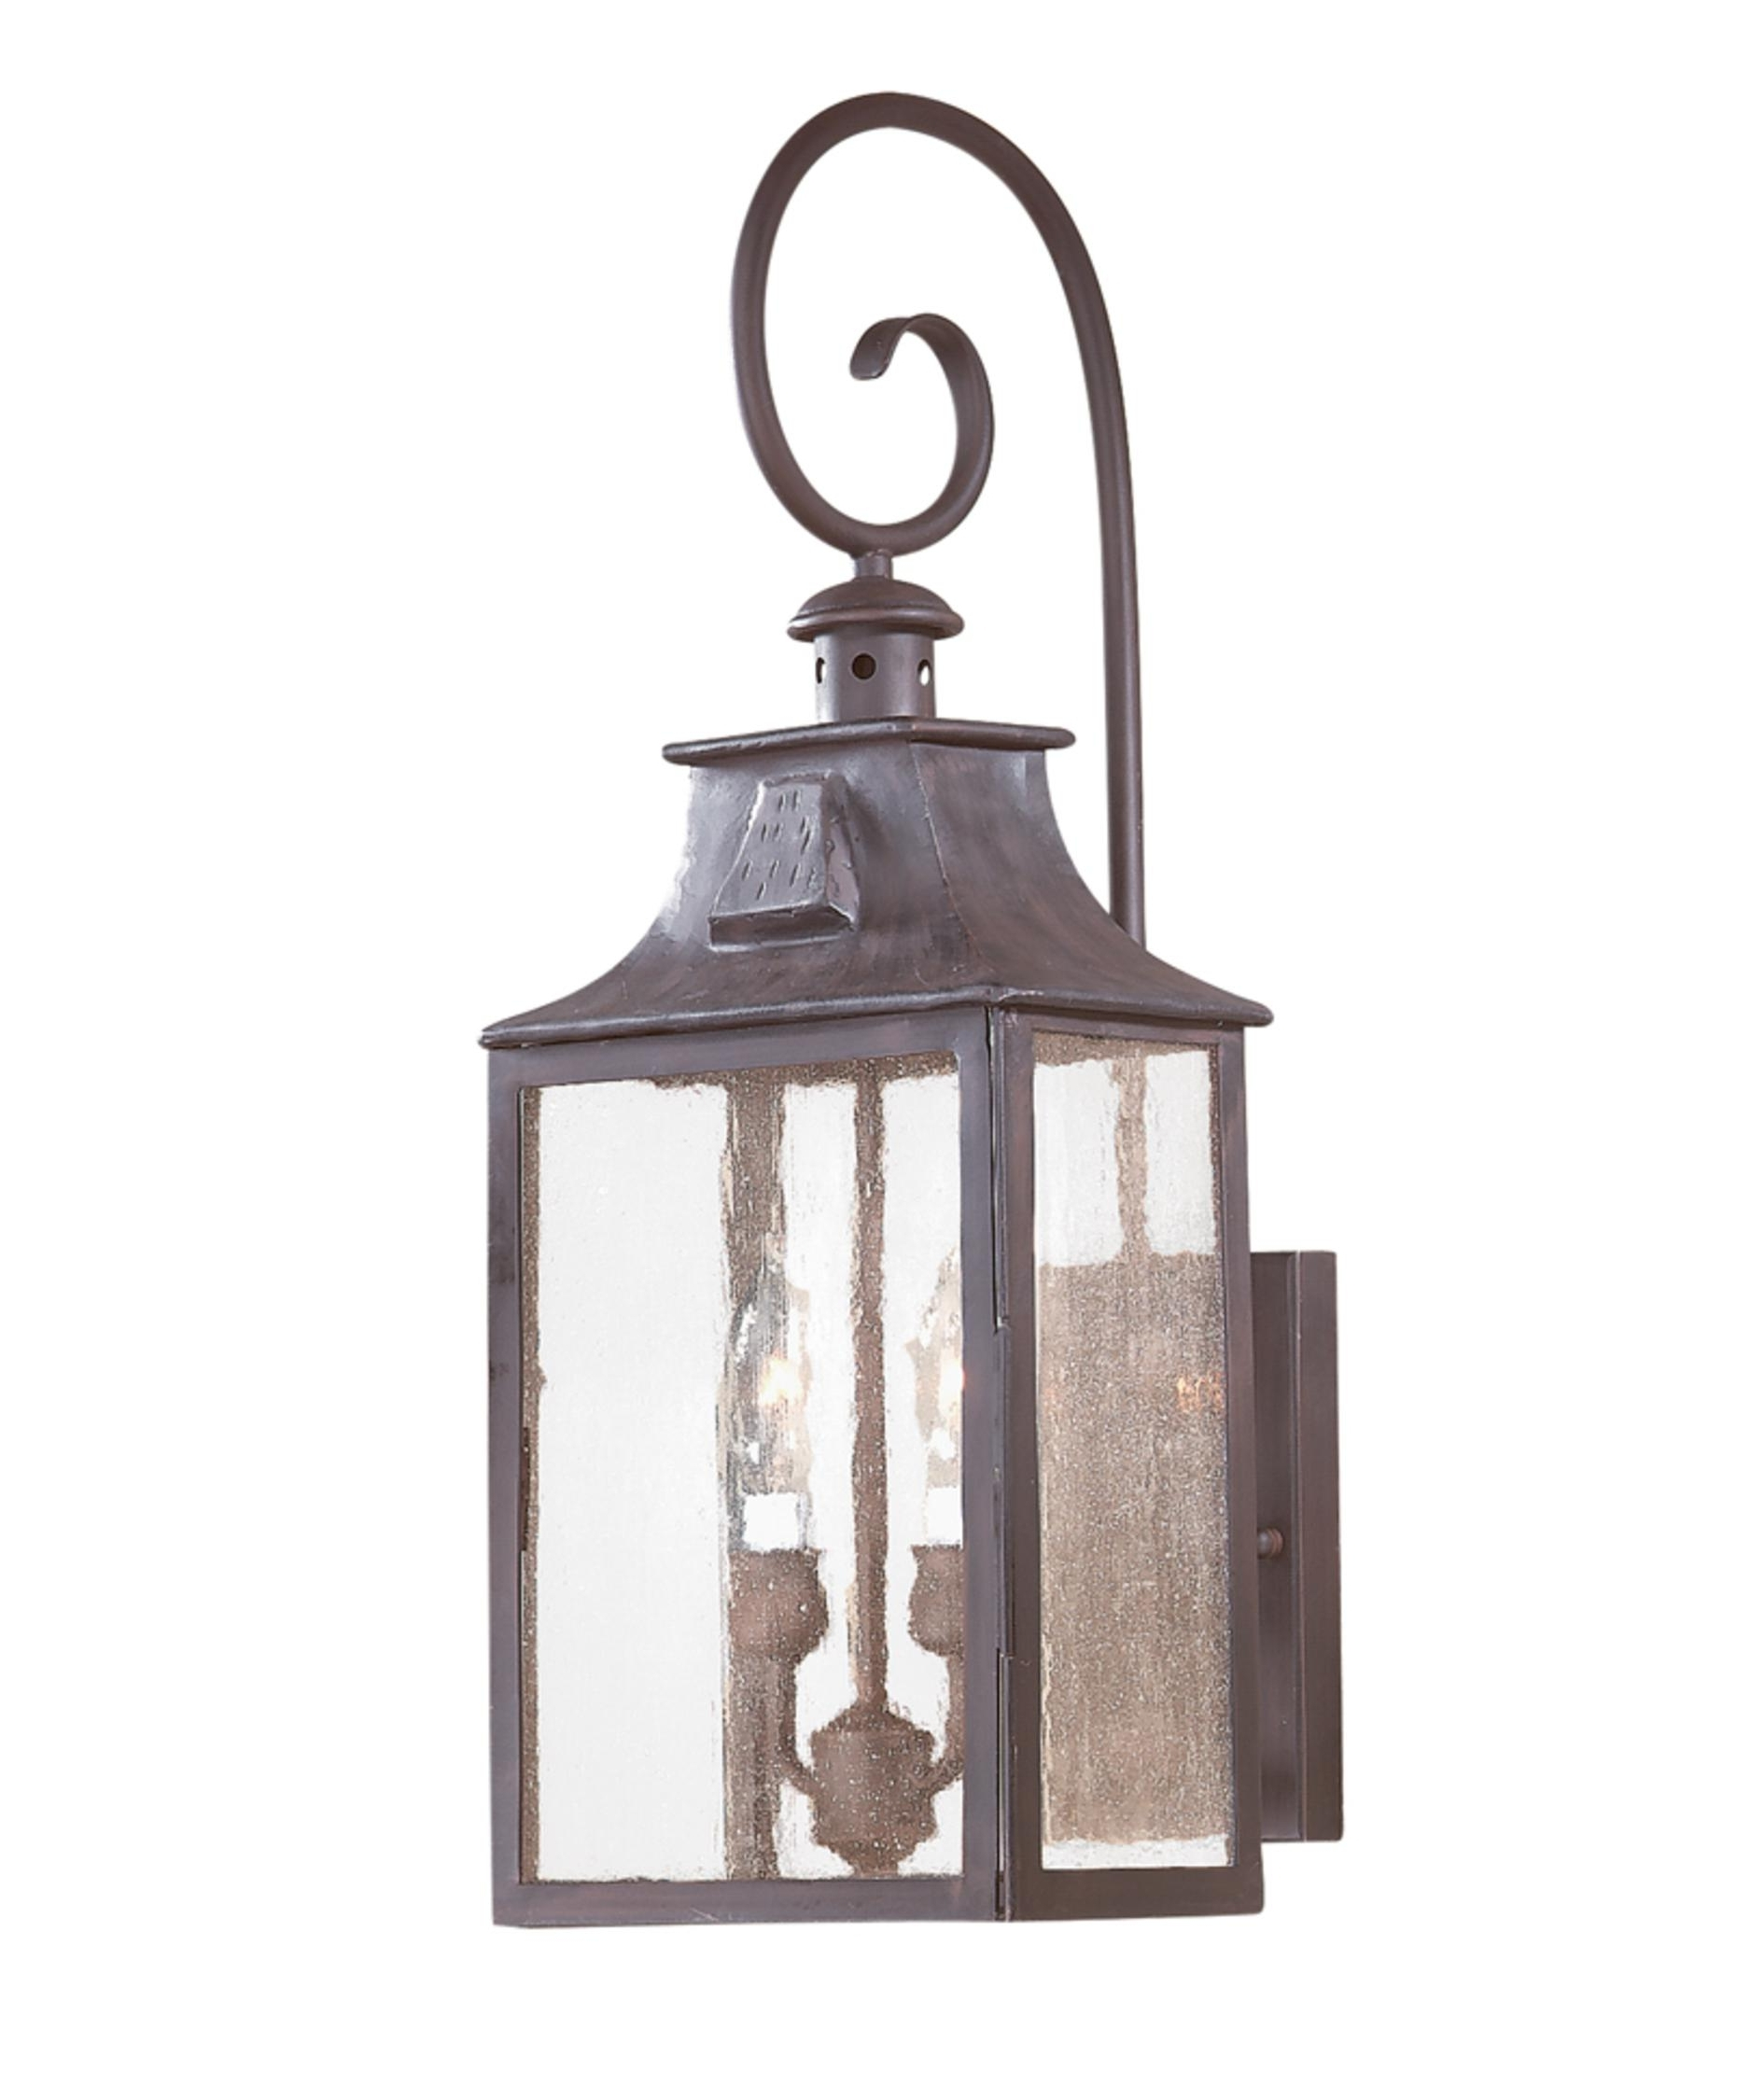 Troy Lighting B9002 Newton 9 Inch Wide 2 Light Outdoor Wall Light With Preferred Outdoor Wall Light Glass (View 18 of 20)